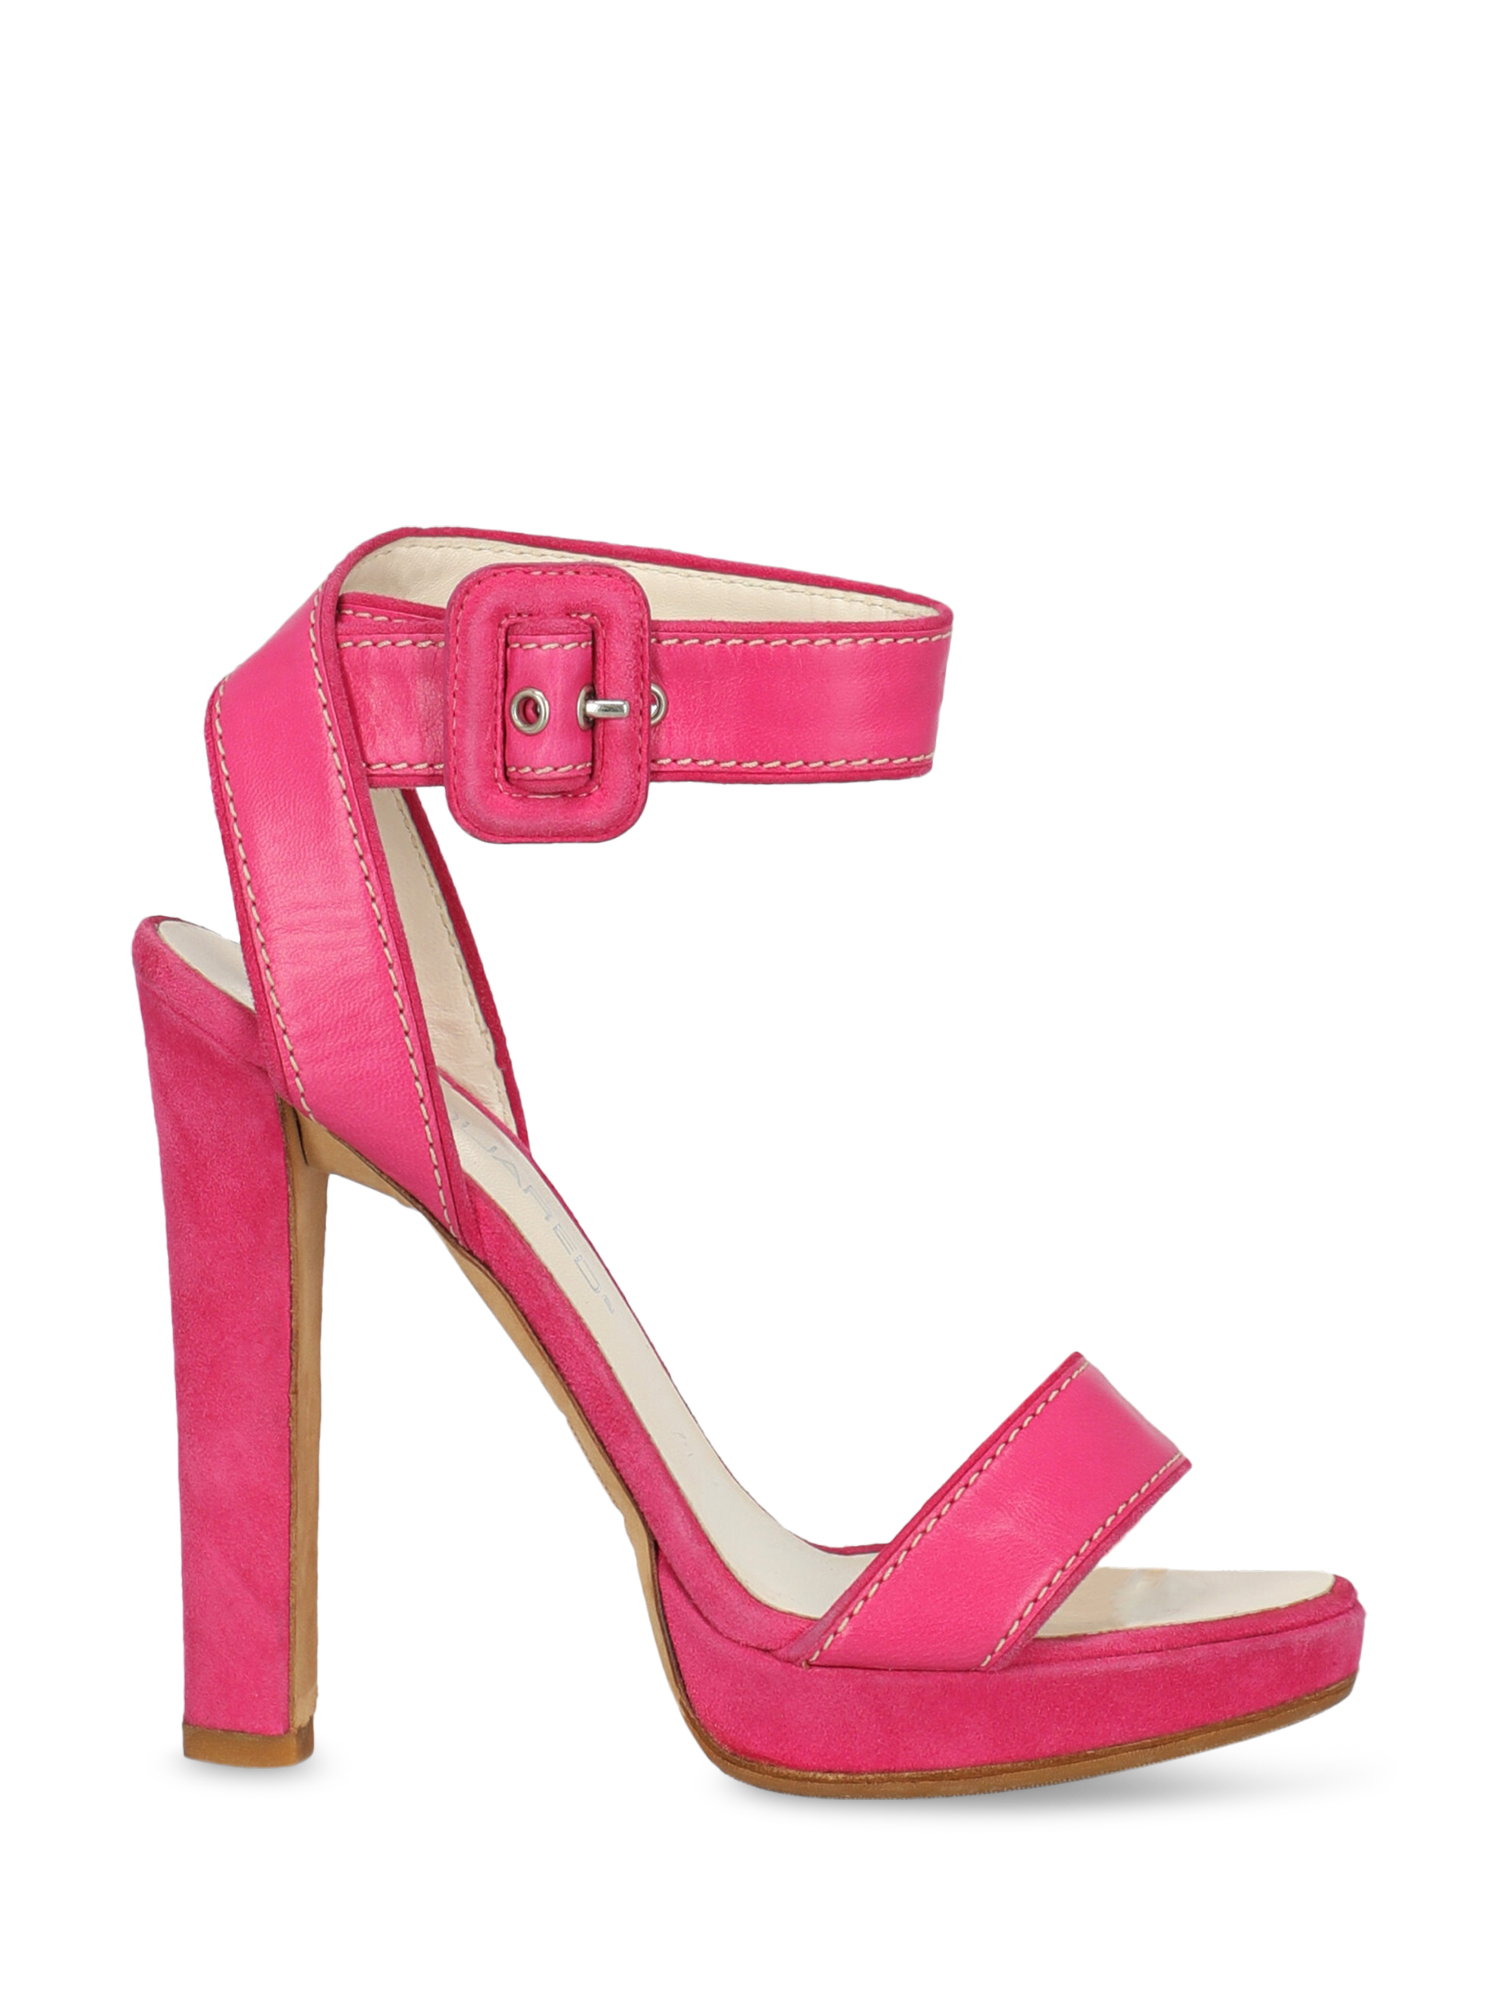 Pre-owned Dsquared2 Shoe In Pink